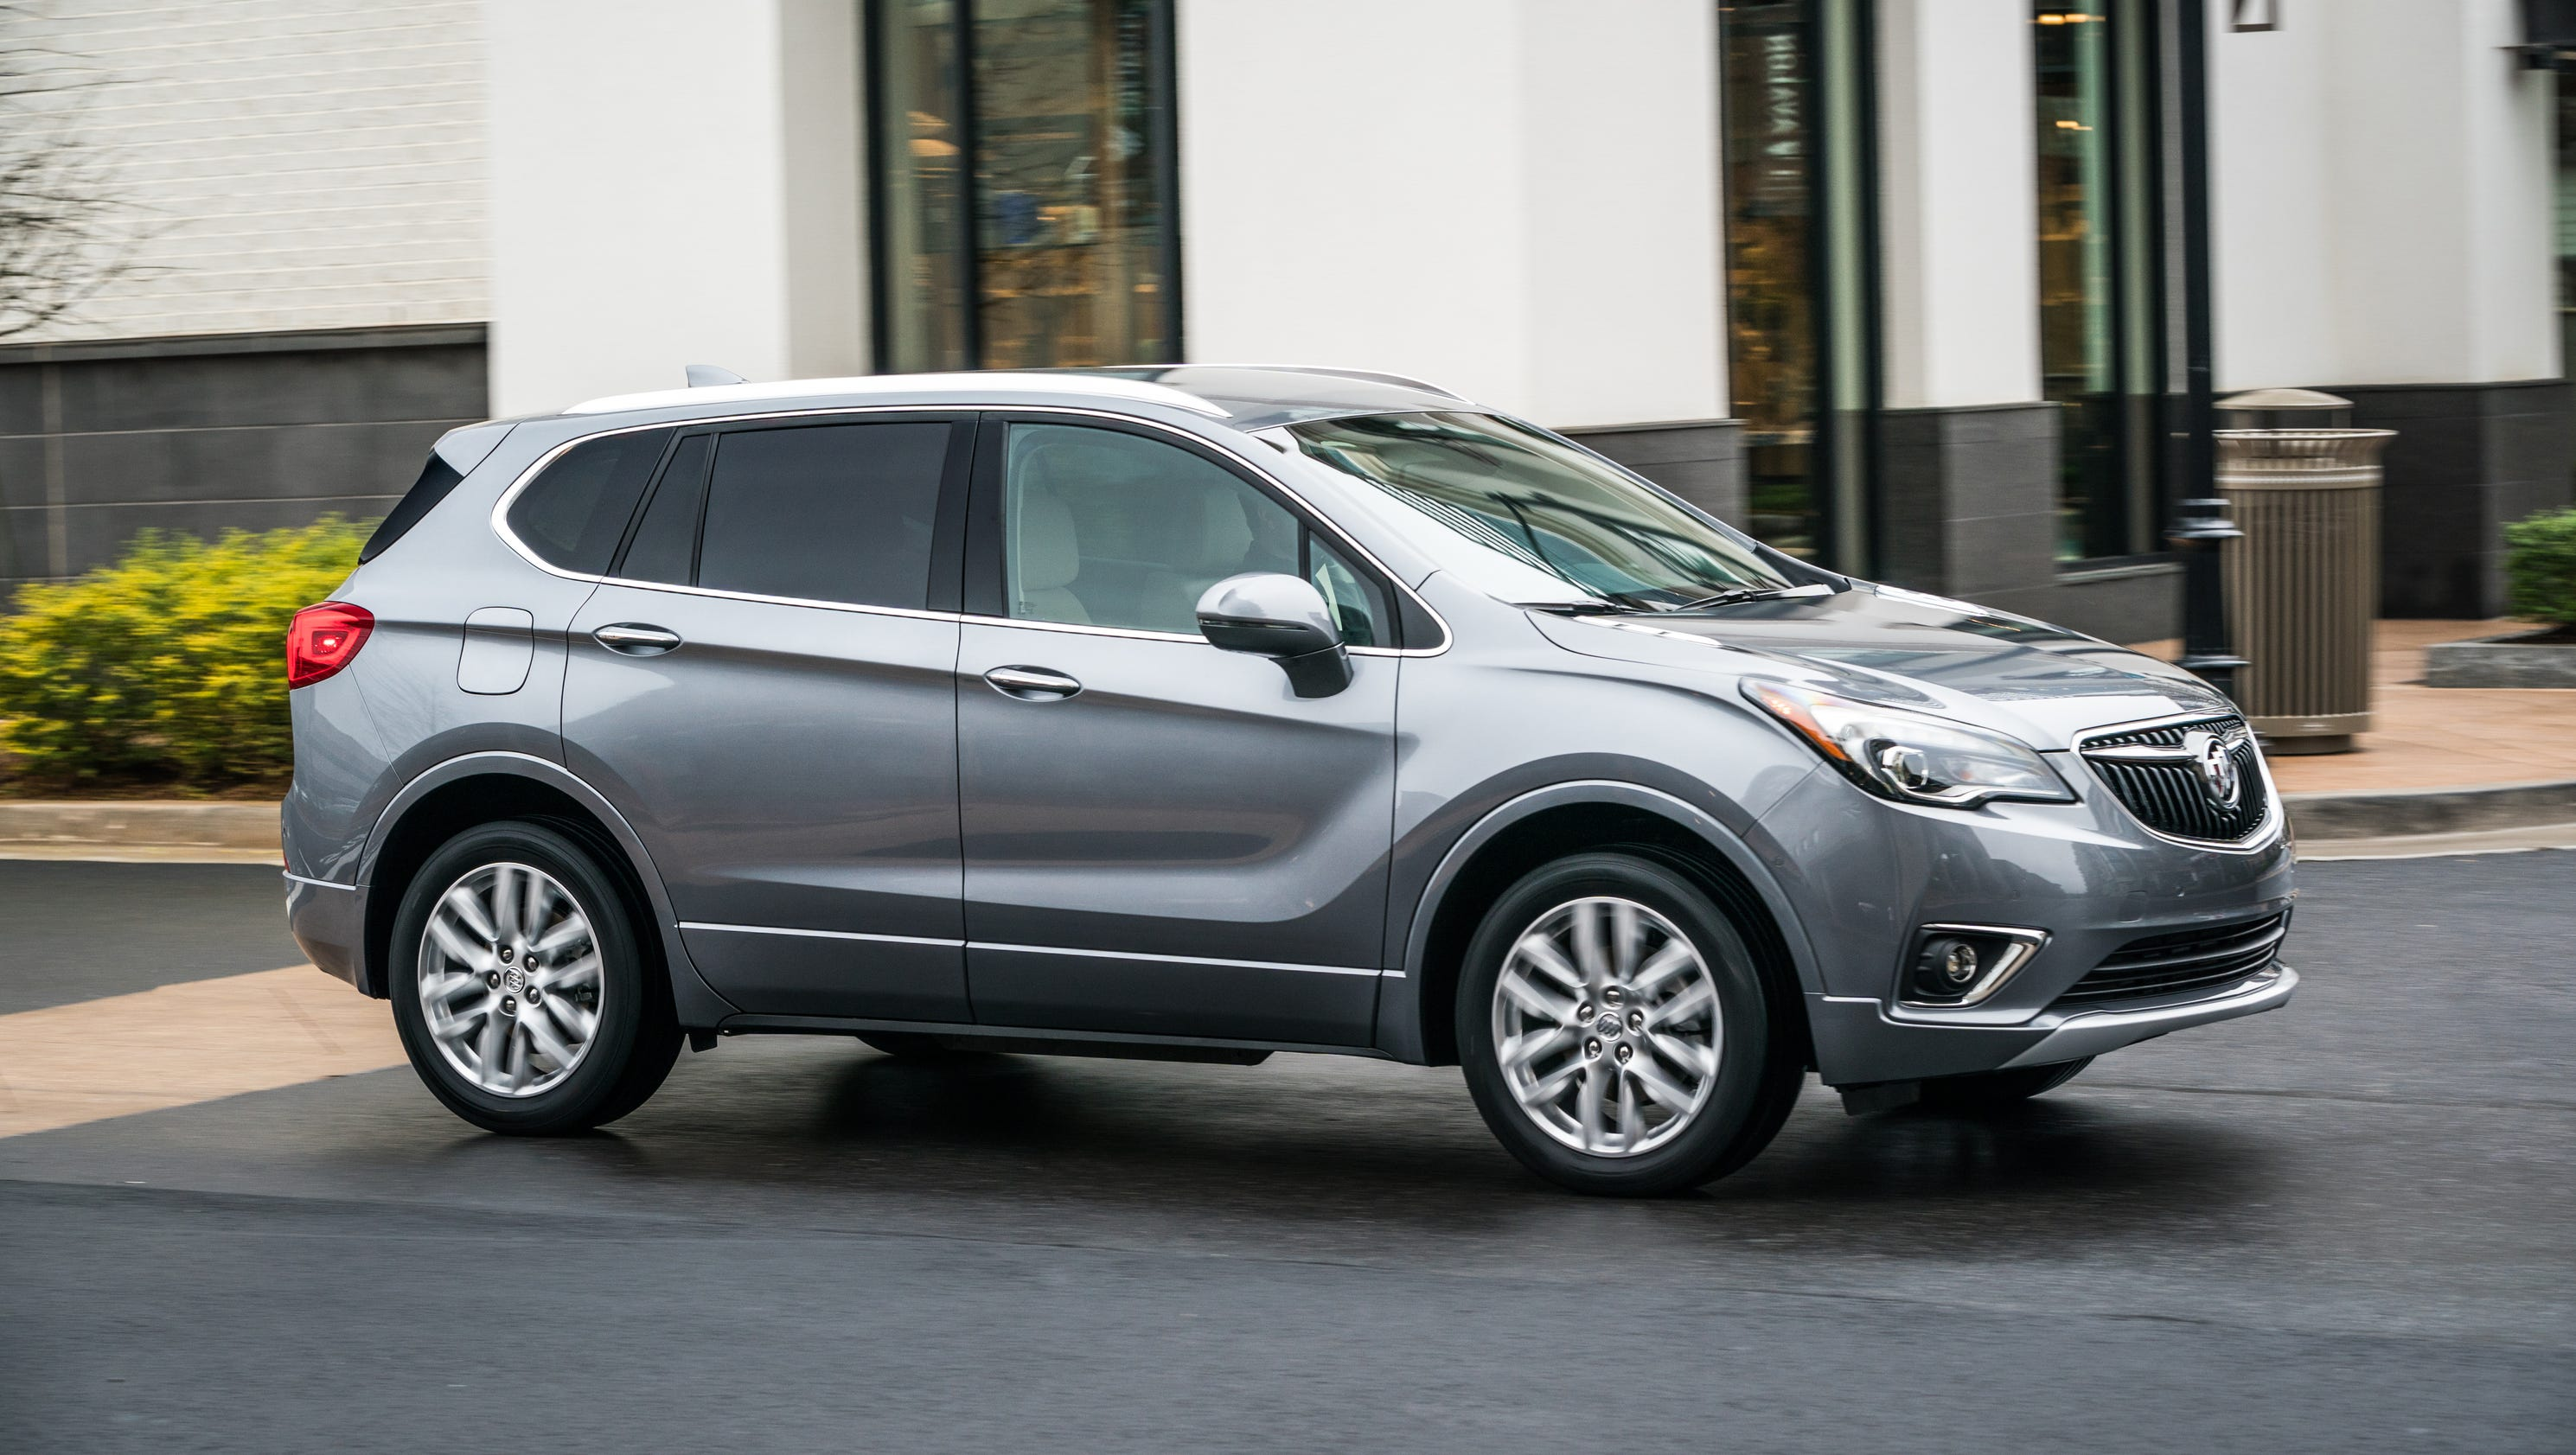 encore top speed cars ratings envision buick